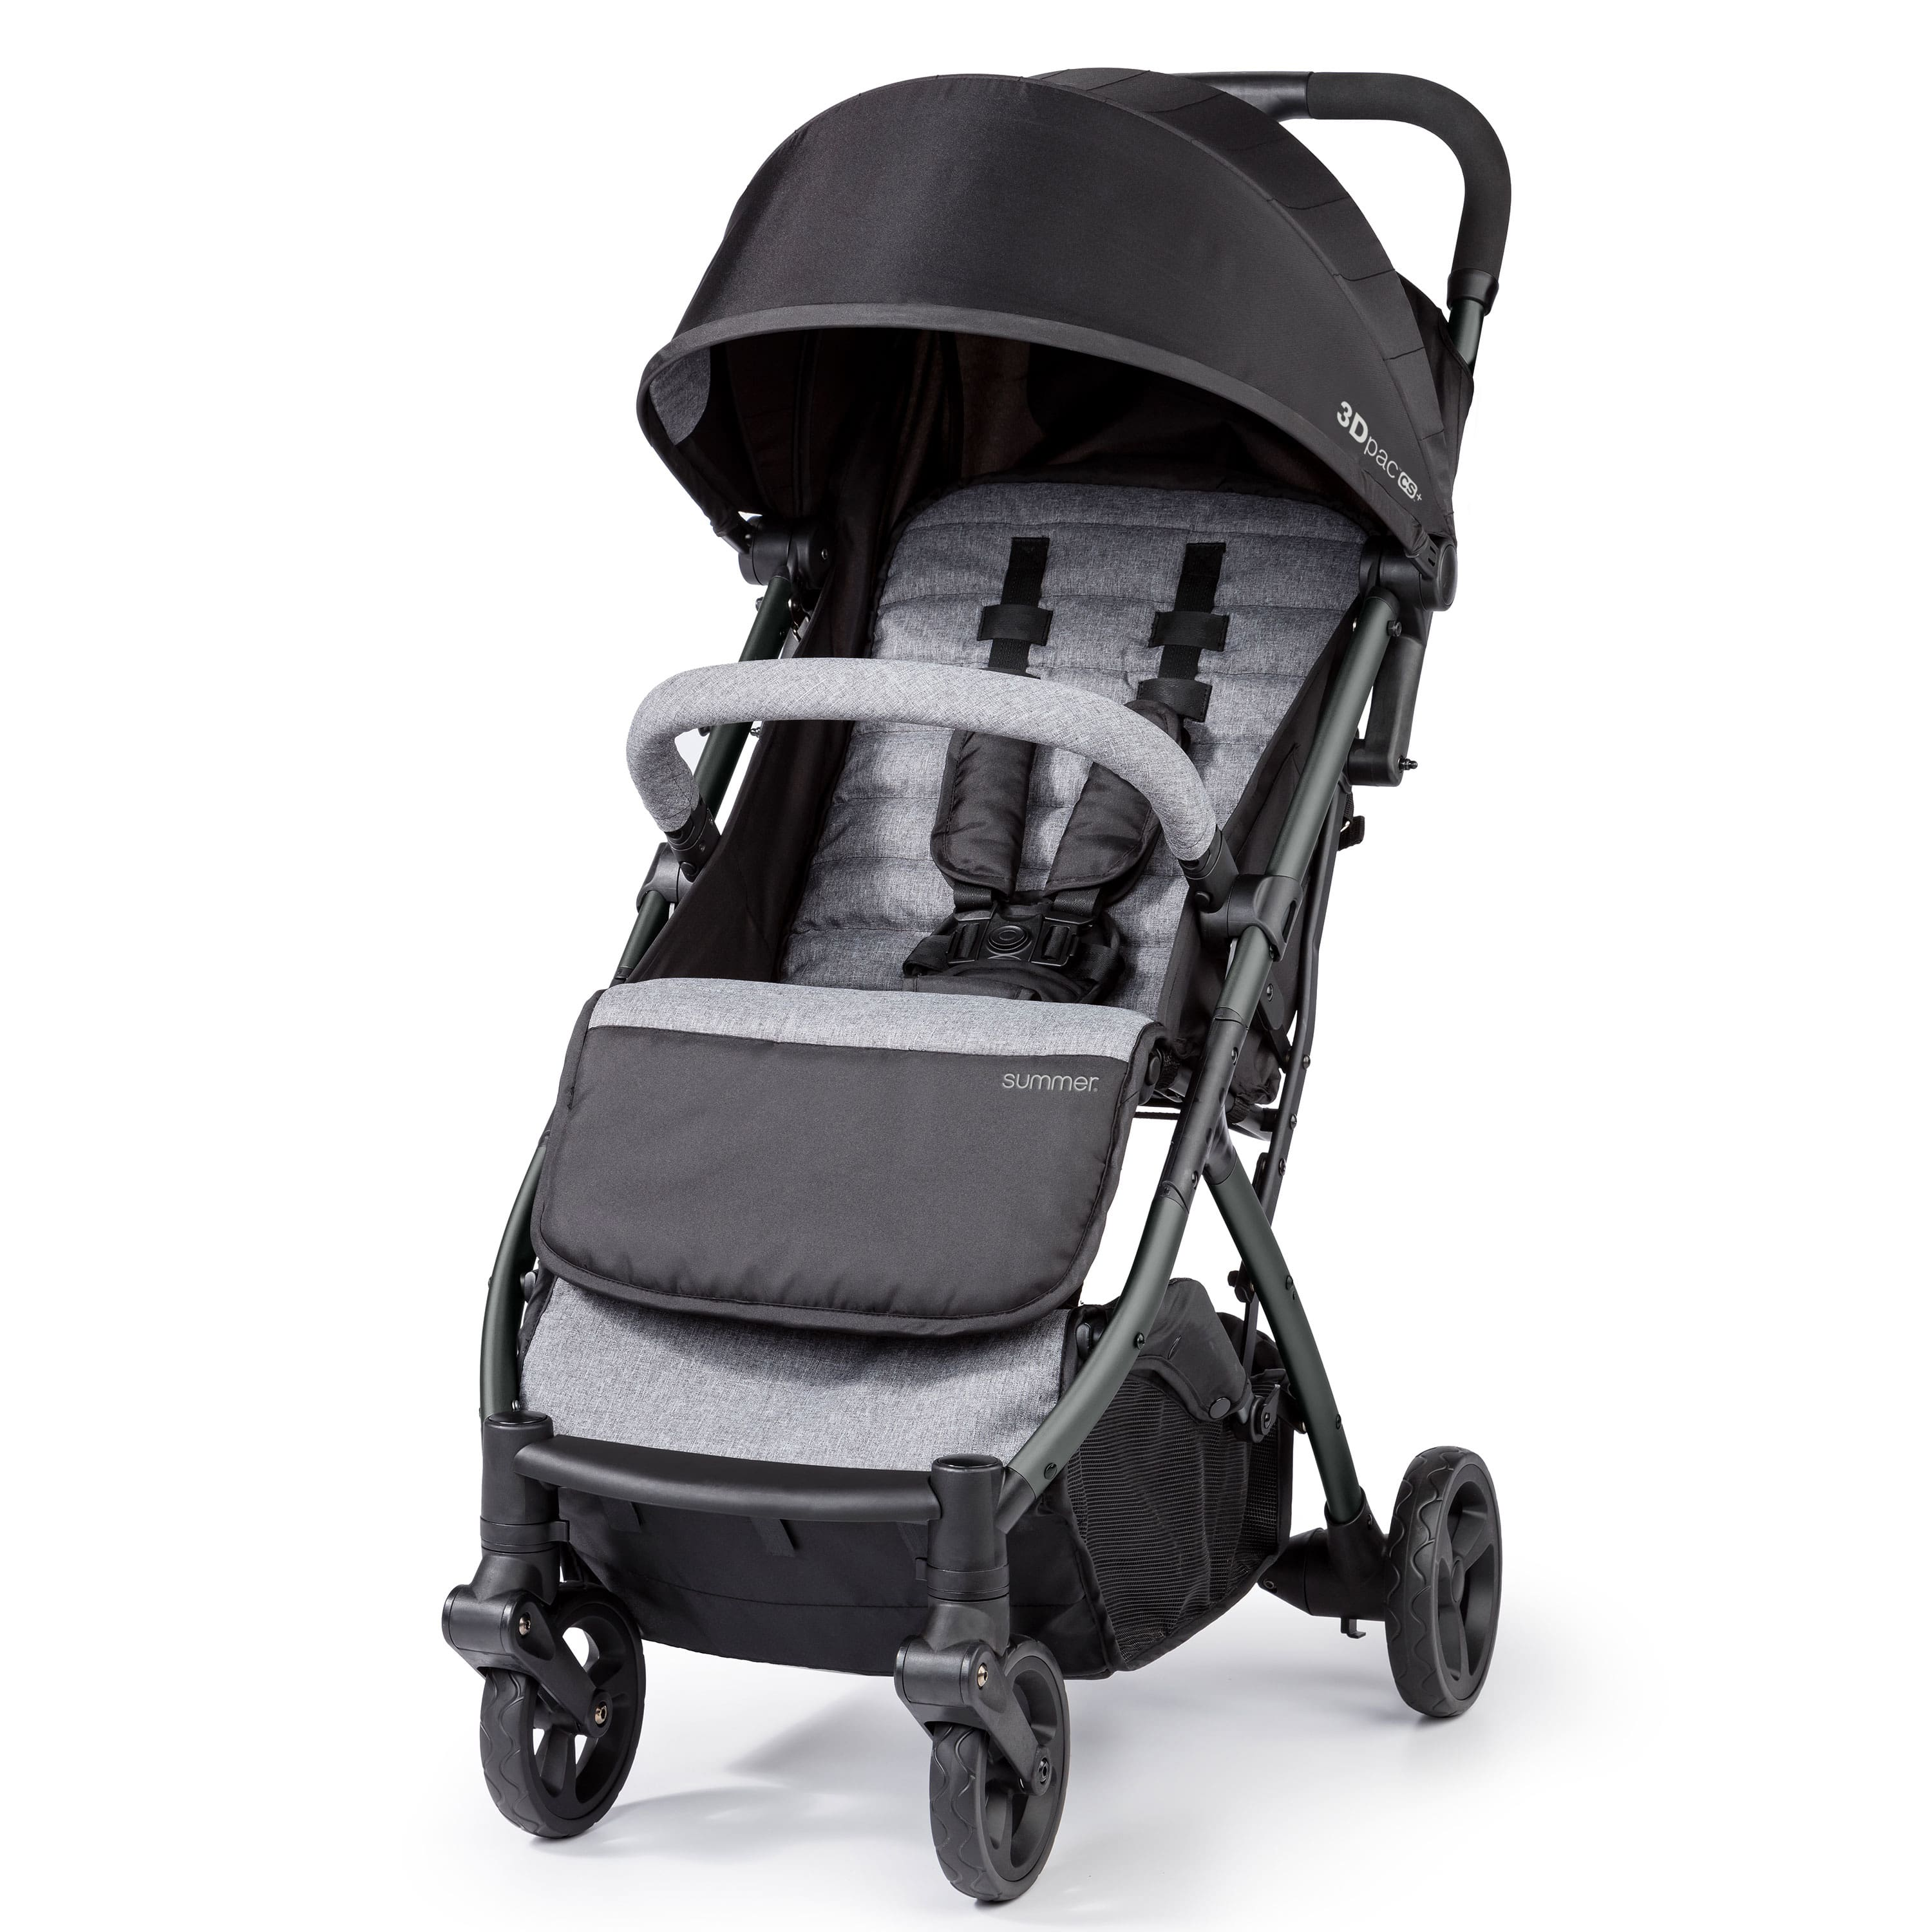 Summer Infant 3Dpac CS+ Compact Foldable Stroller w/ Extra-Large Canopy (Black) $77.10 + Free Shipping